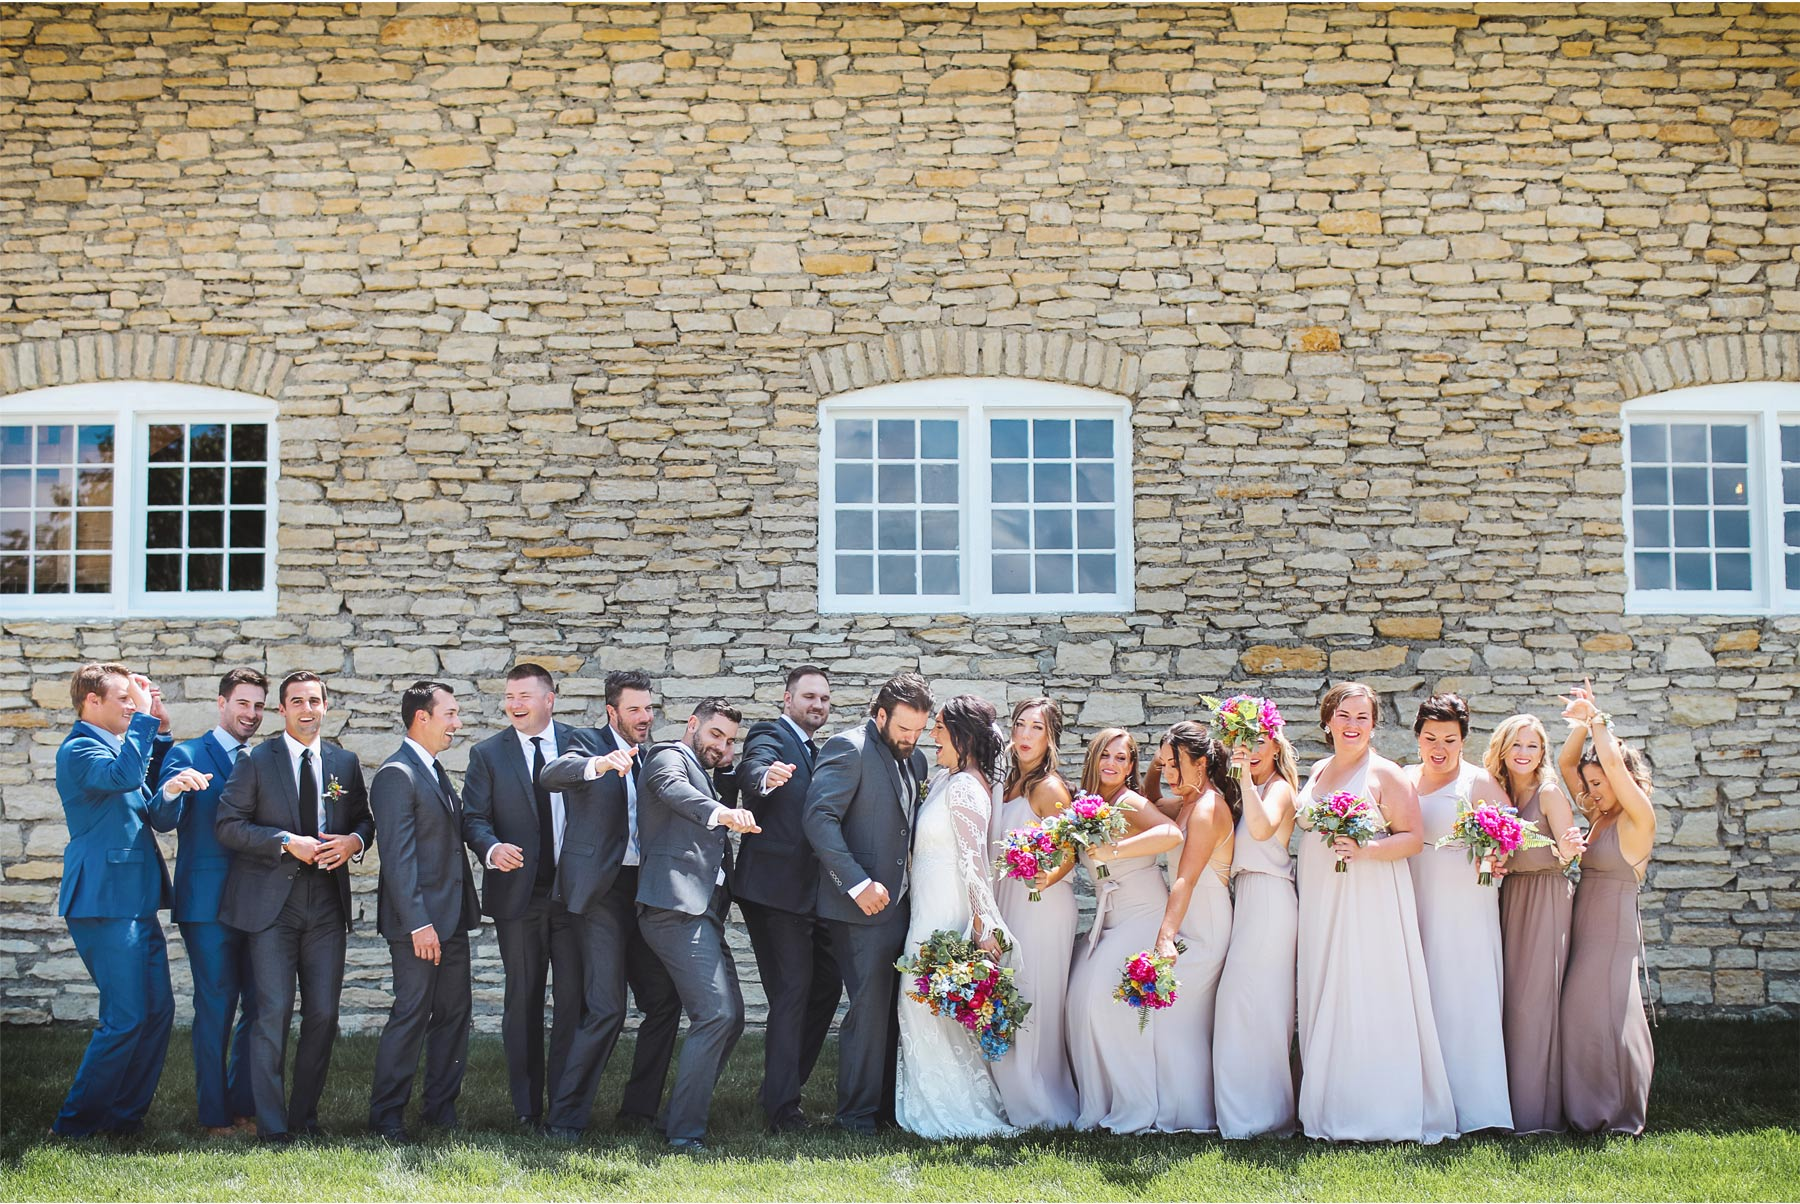 12-Vick-Photography-Rochester-Minnesota-Mayowood-Stone-Barn-Country-Wedding-Summer-Bride-Groom-Bridesmaid-Groomsmen-Lizz-and-Brady.jpg